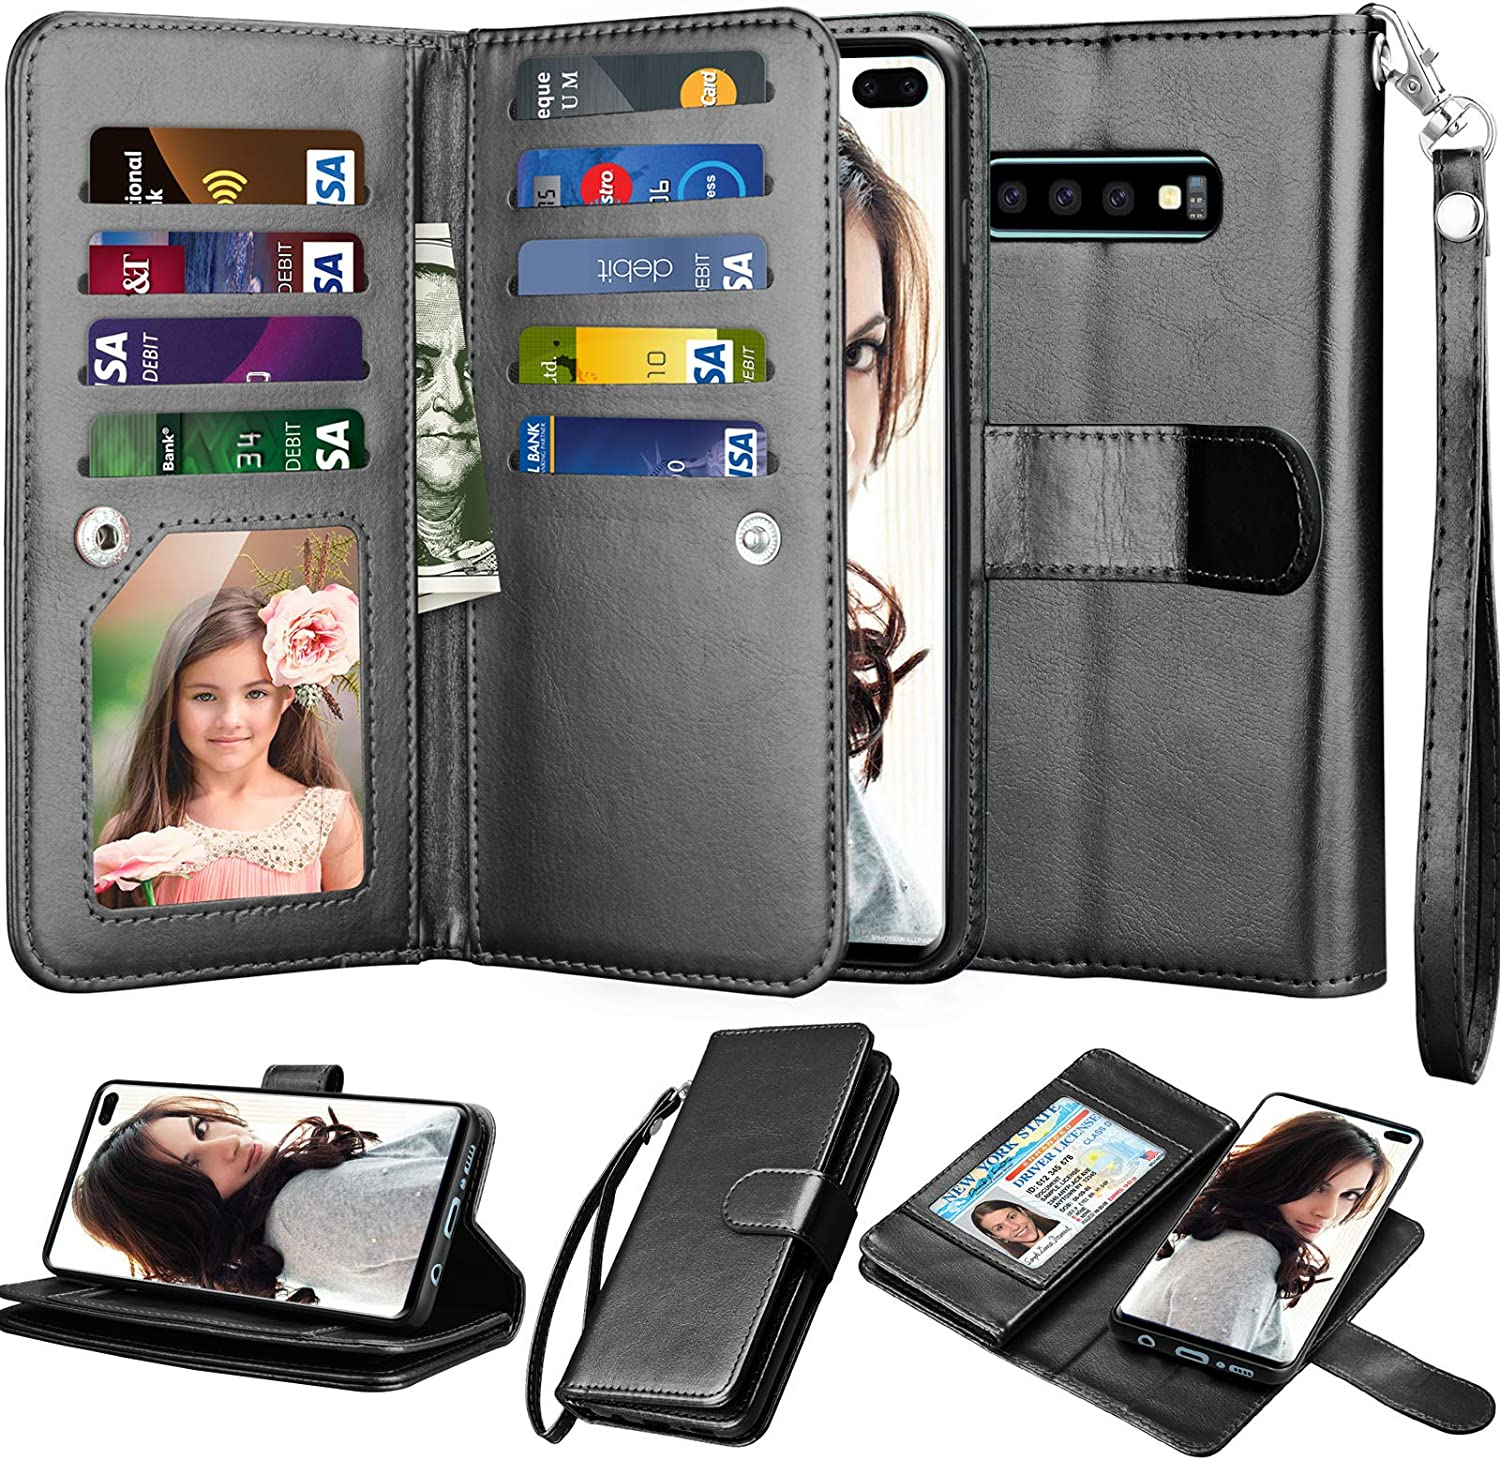 NJJEX Wallet Case for Galaxy S10 Plus, for Galaxy S10+ Case, PU Leather [9 Card Slots] Credit Holder Folio Flip [Detachable][Kickstand] Magnetic Phone Cover & Wrist Strap for Samsung S10 Plus [Black]